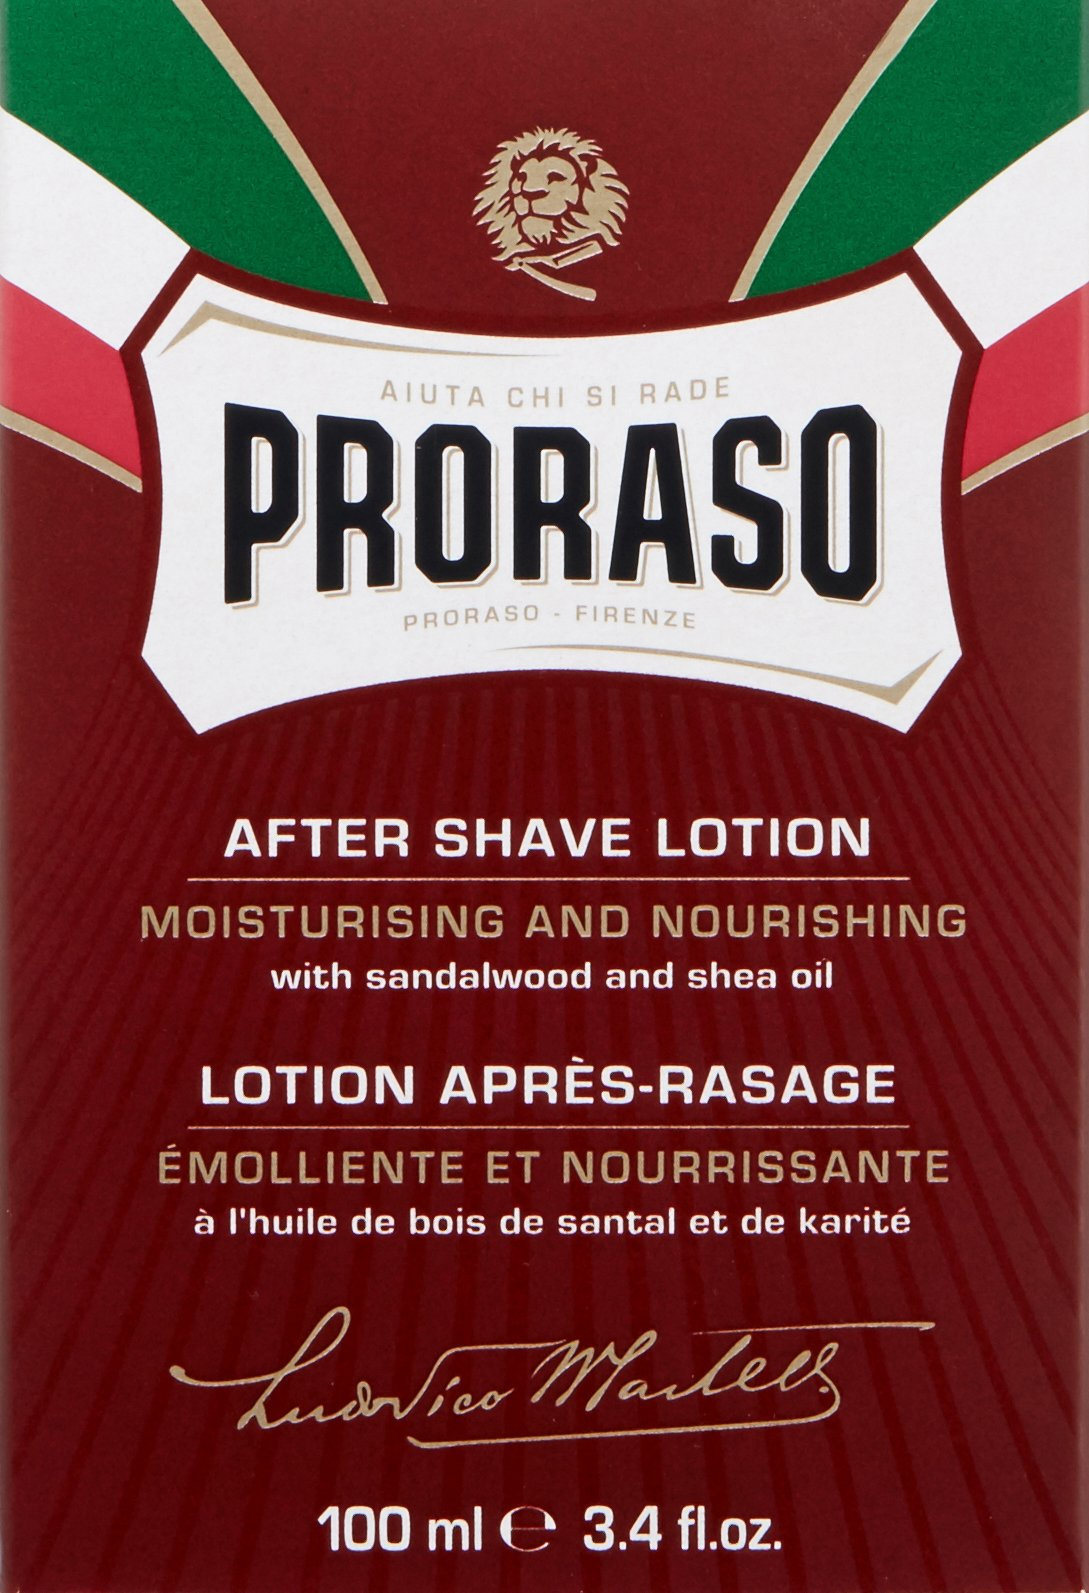 Proraso After Shave Lotion, Moisturizing and Nourishing, 3.4 fl oz by Proraso (Image #3)